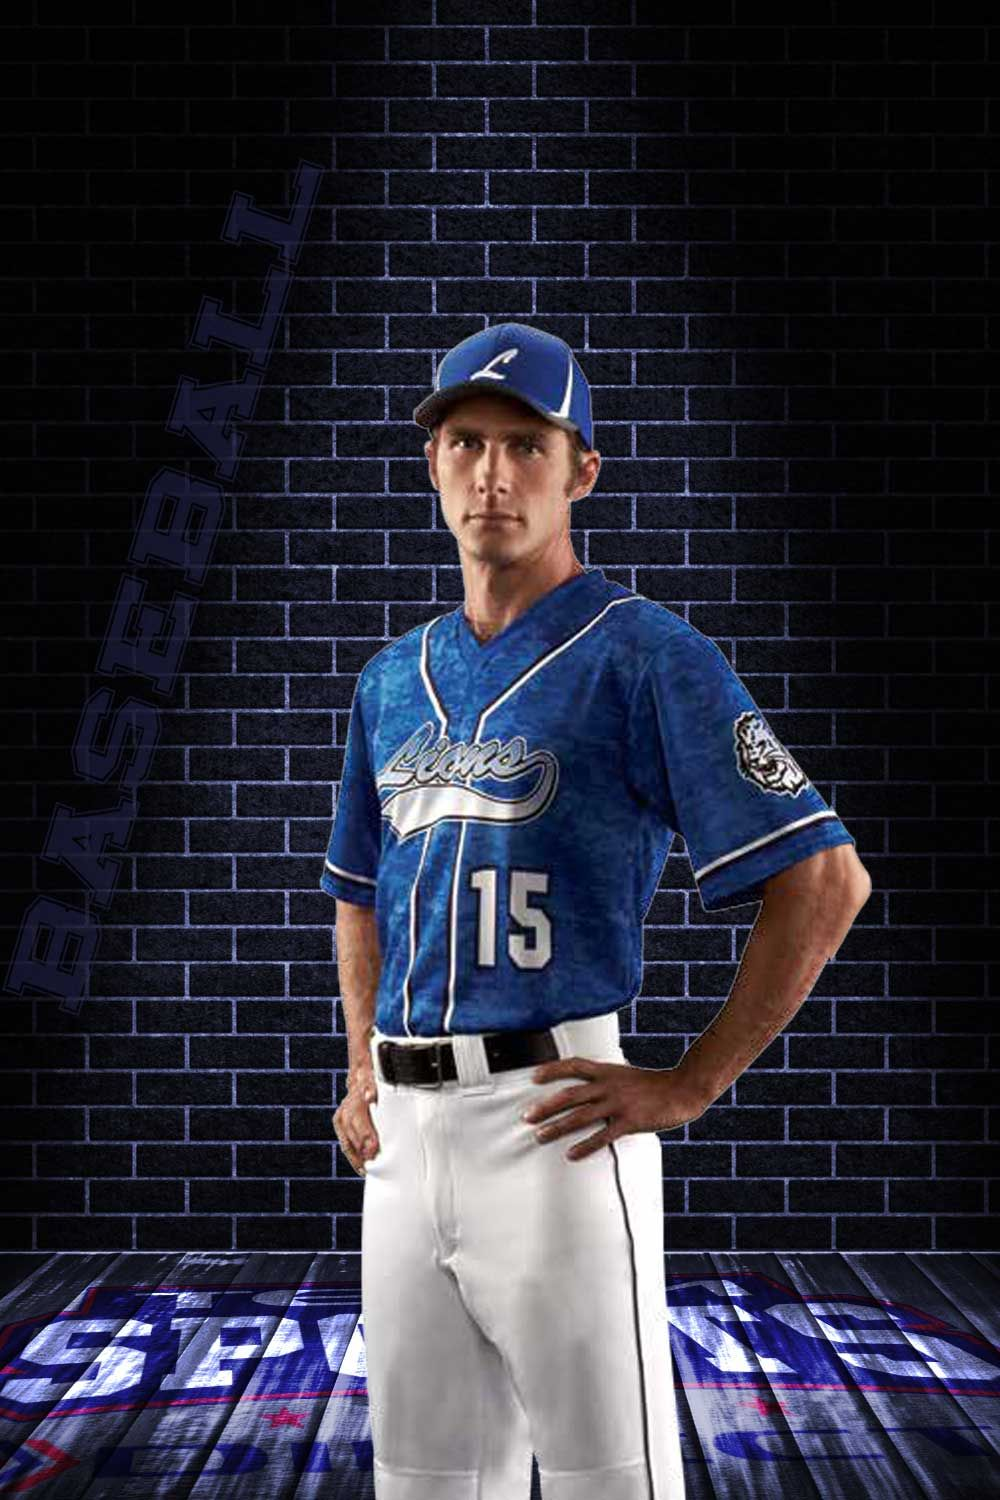 The Strike Zone baseball jersey design features Digital